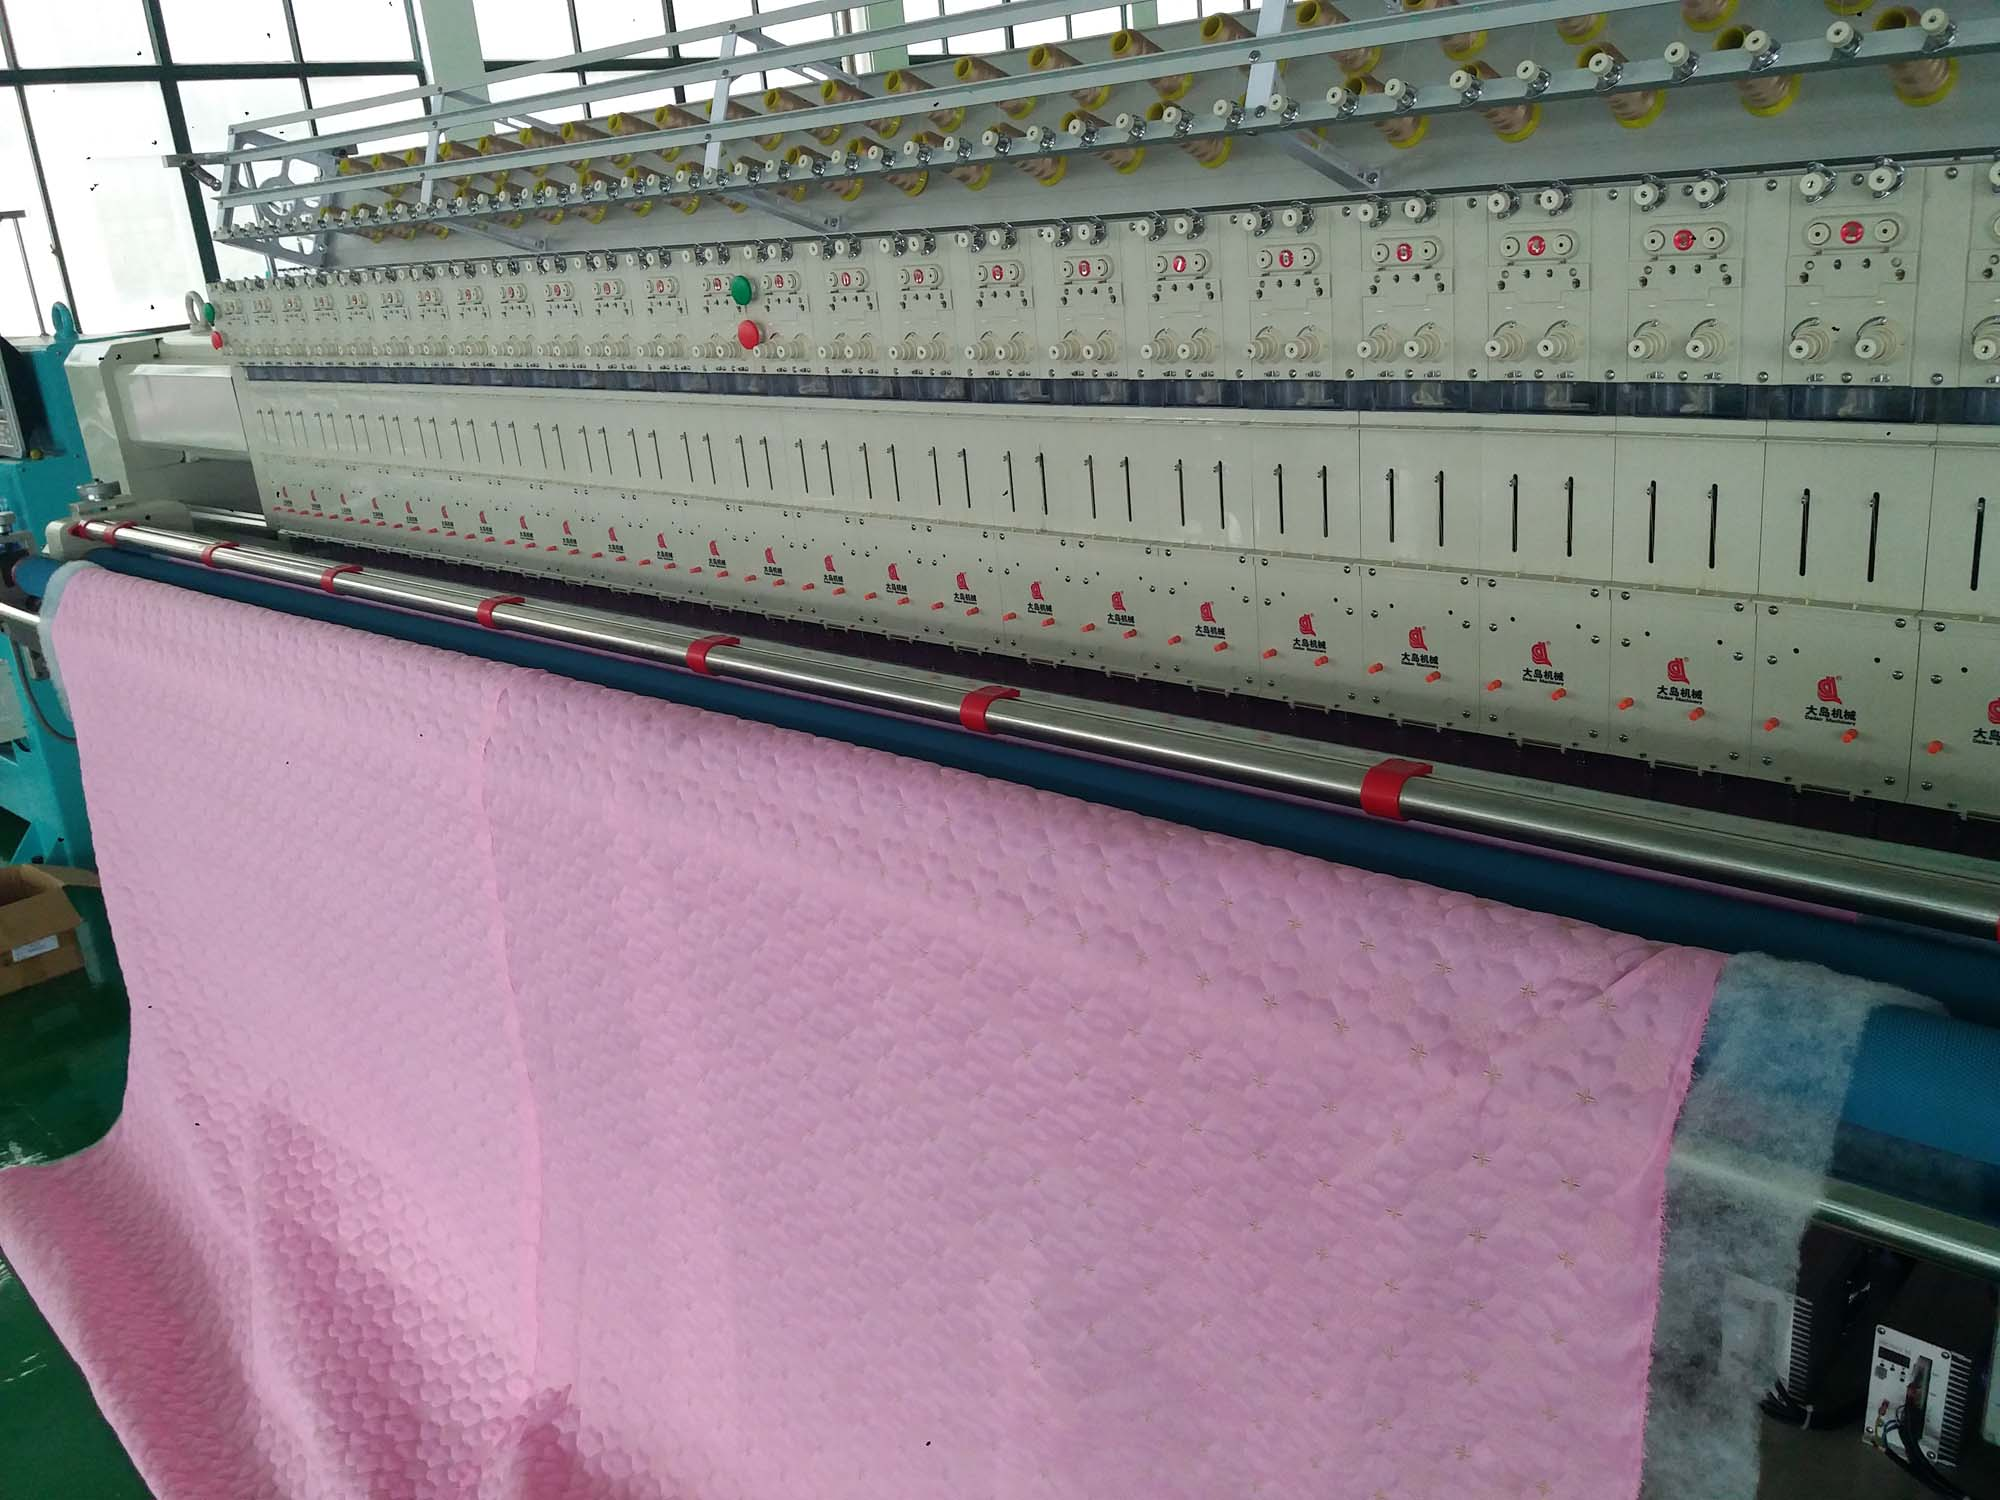 Quilting Embroidery machine for produce home textiles, apparel, mats, curtains...